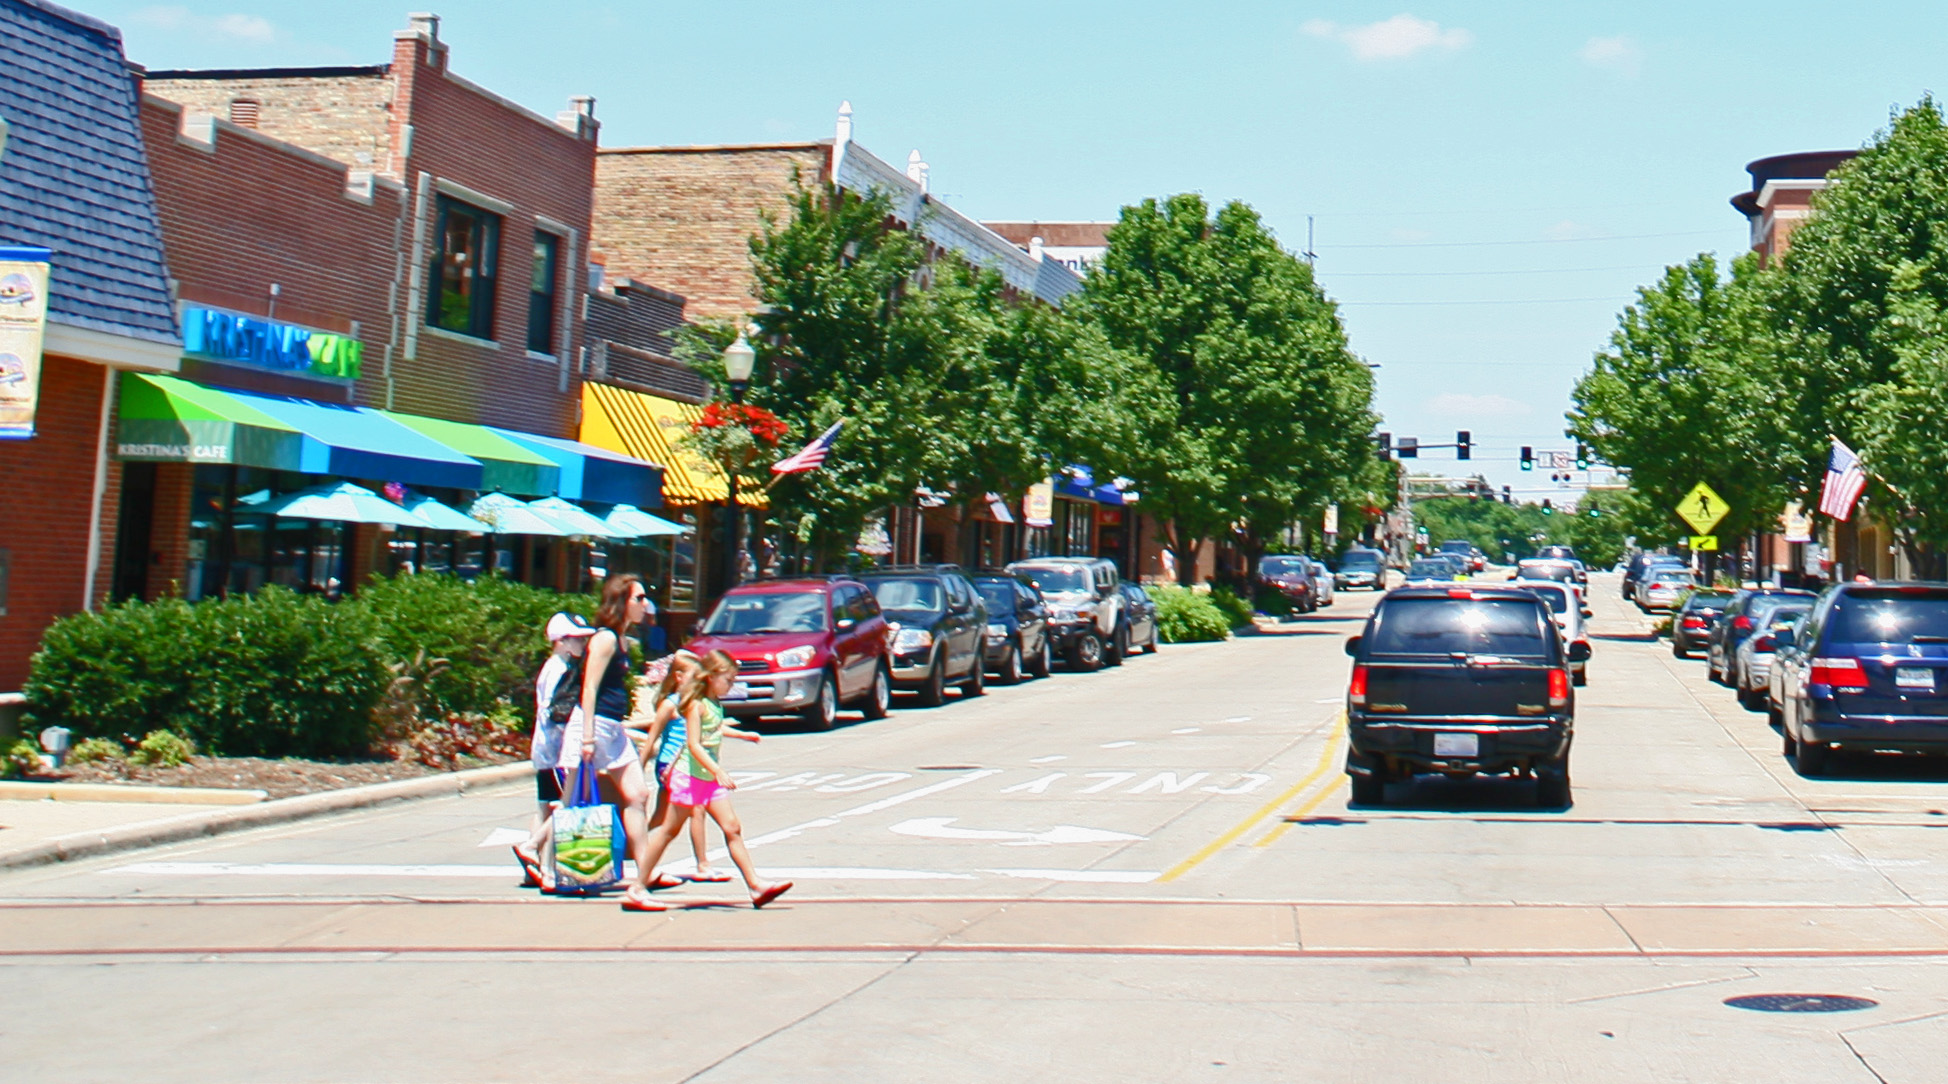 downers grove friendliest small towns